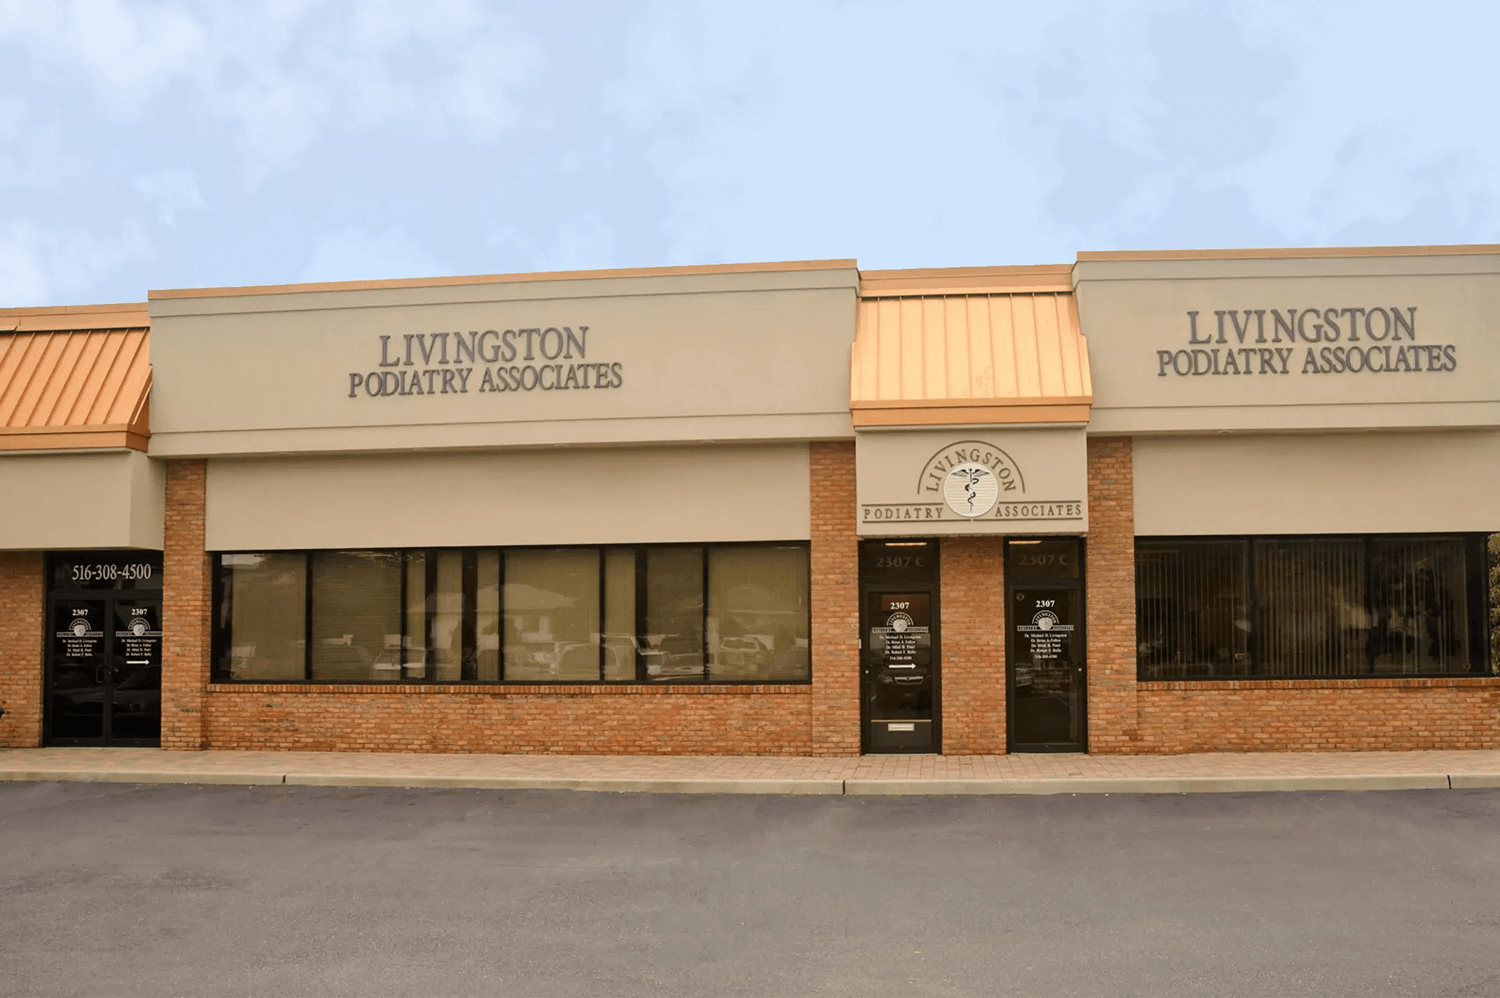 Outside view of Livingston Podiatry Associates